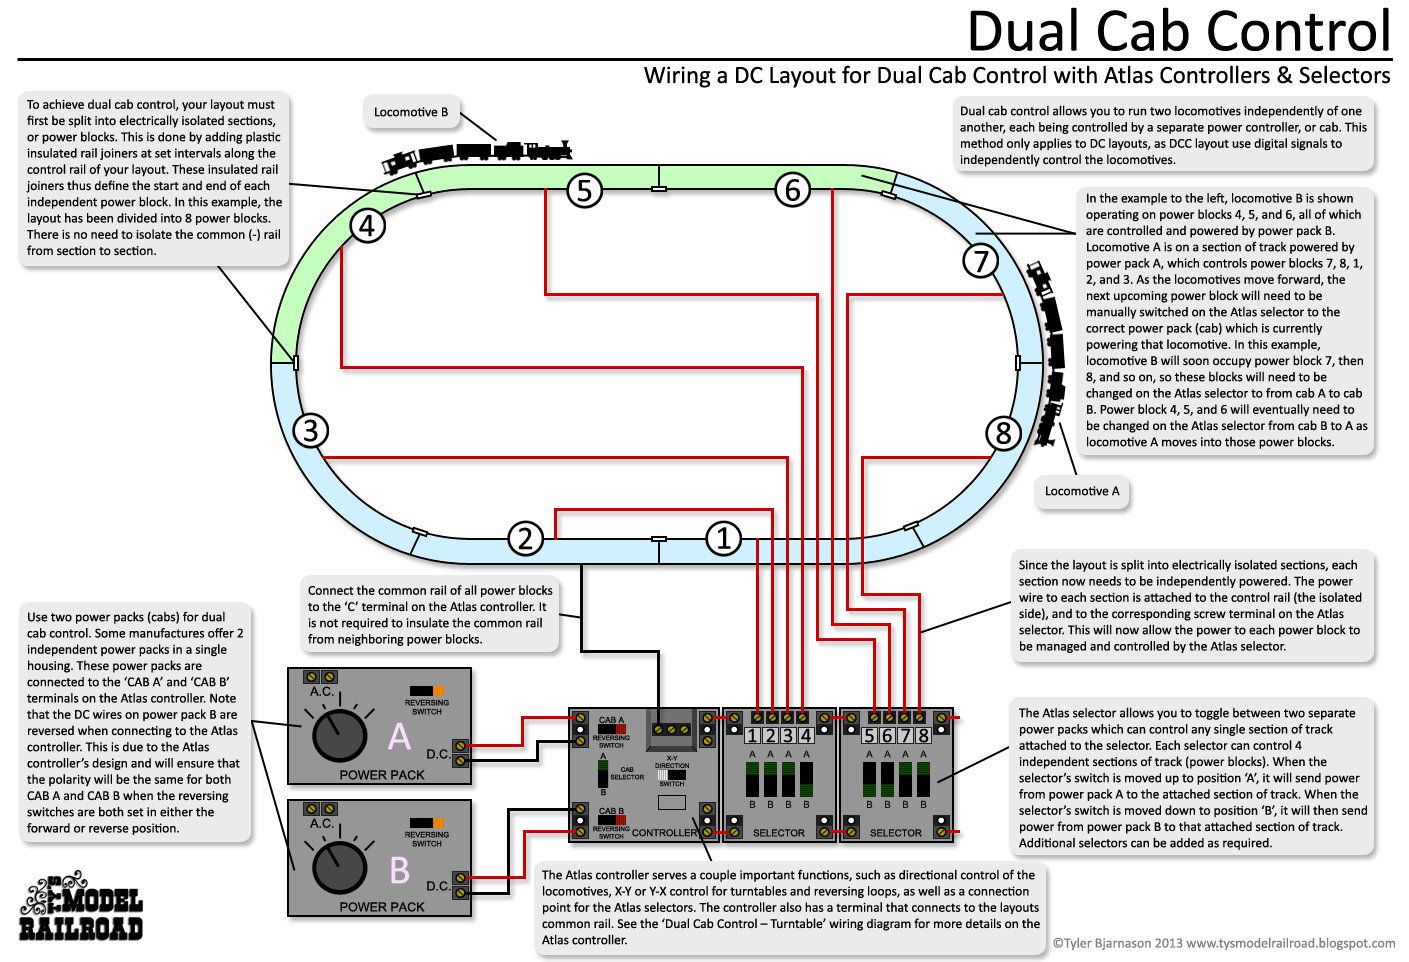 Dual Cab Control ty's model railroad wiring diagrams model railroad wiring diagrams at suagrazia.org